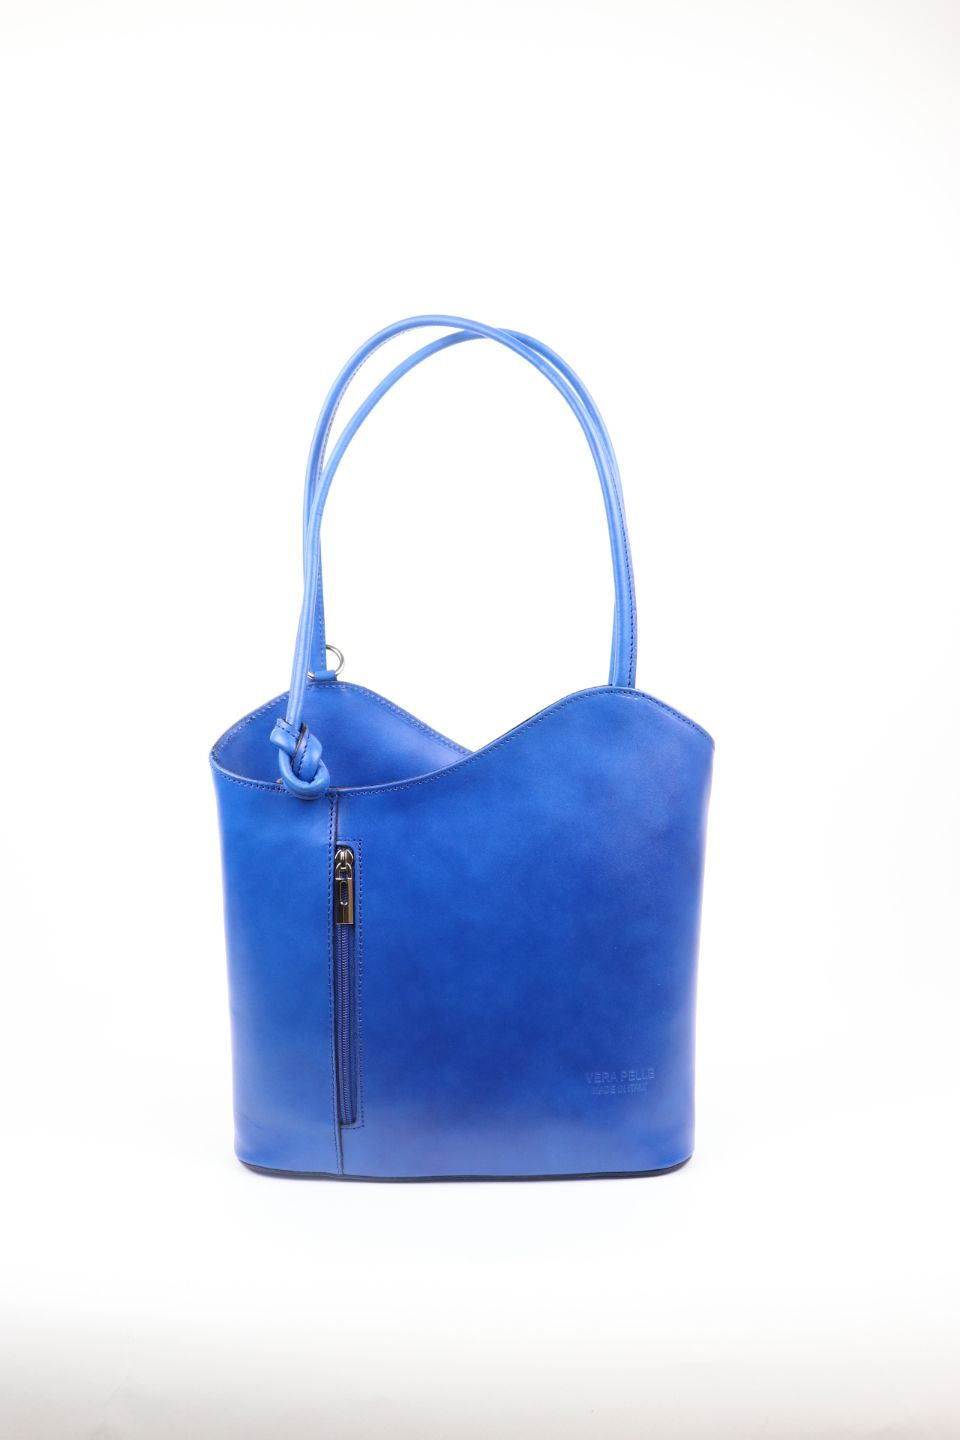 Leather Backpack Handbag - Royal Blue